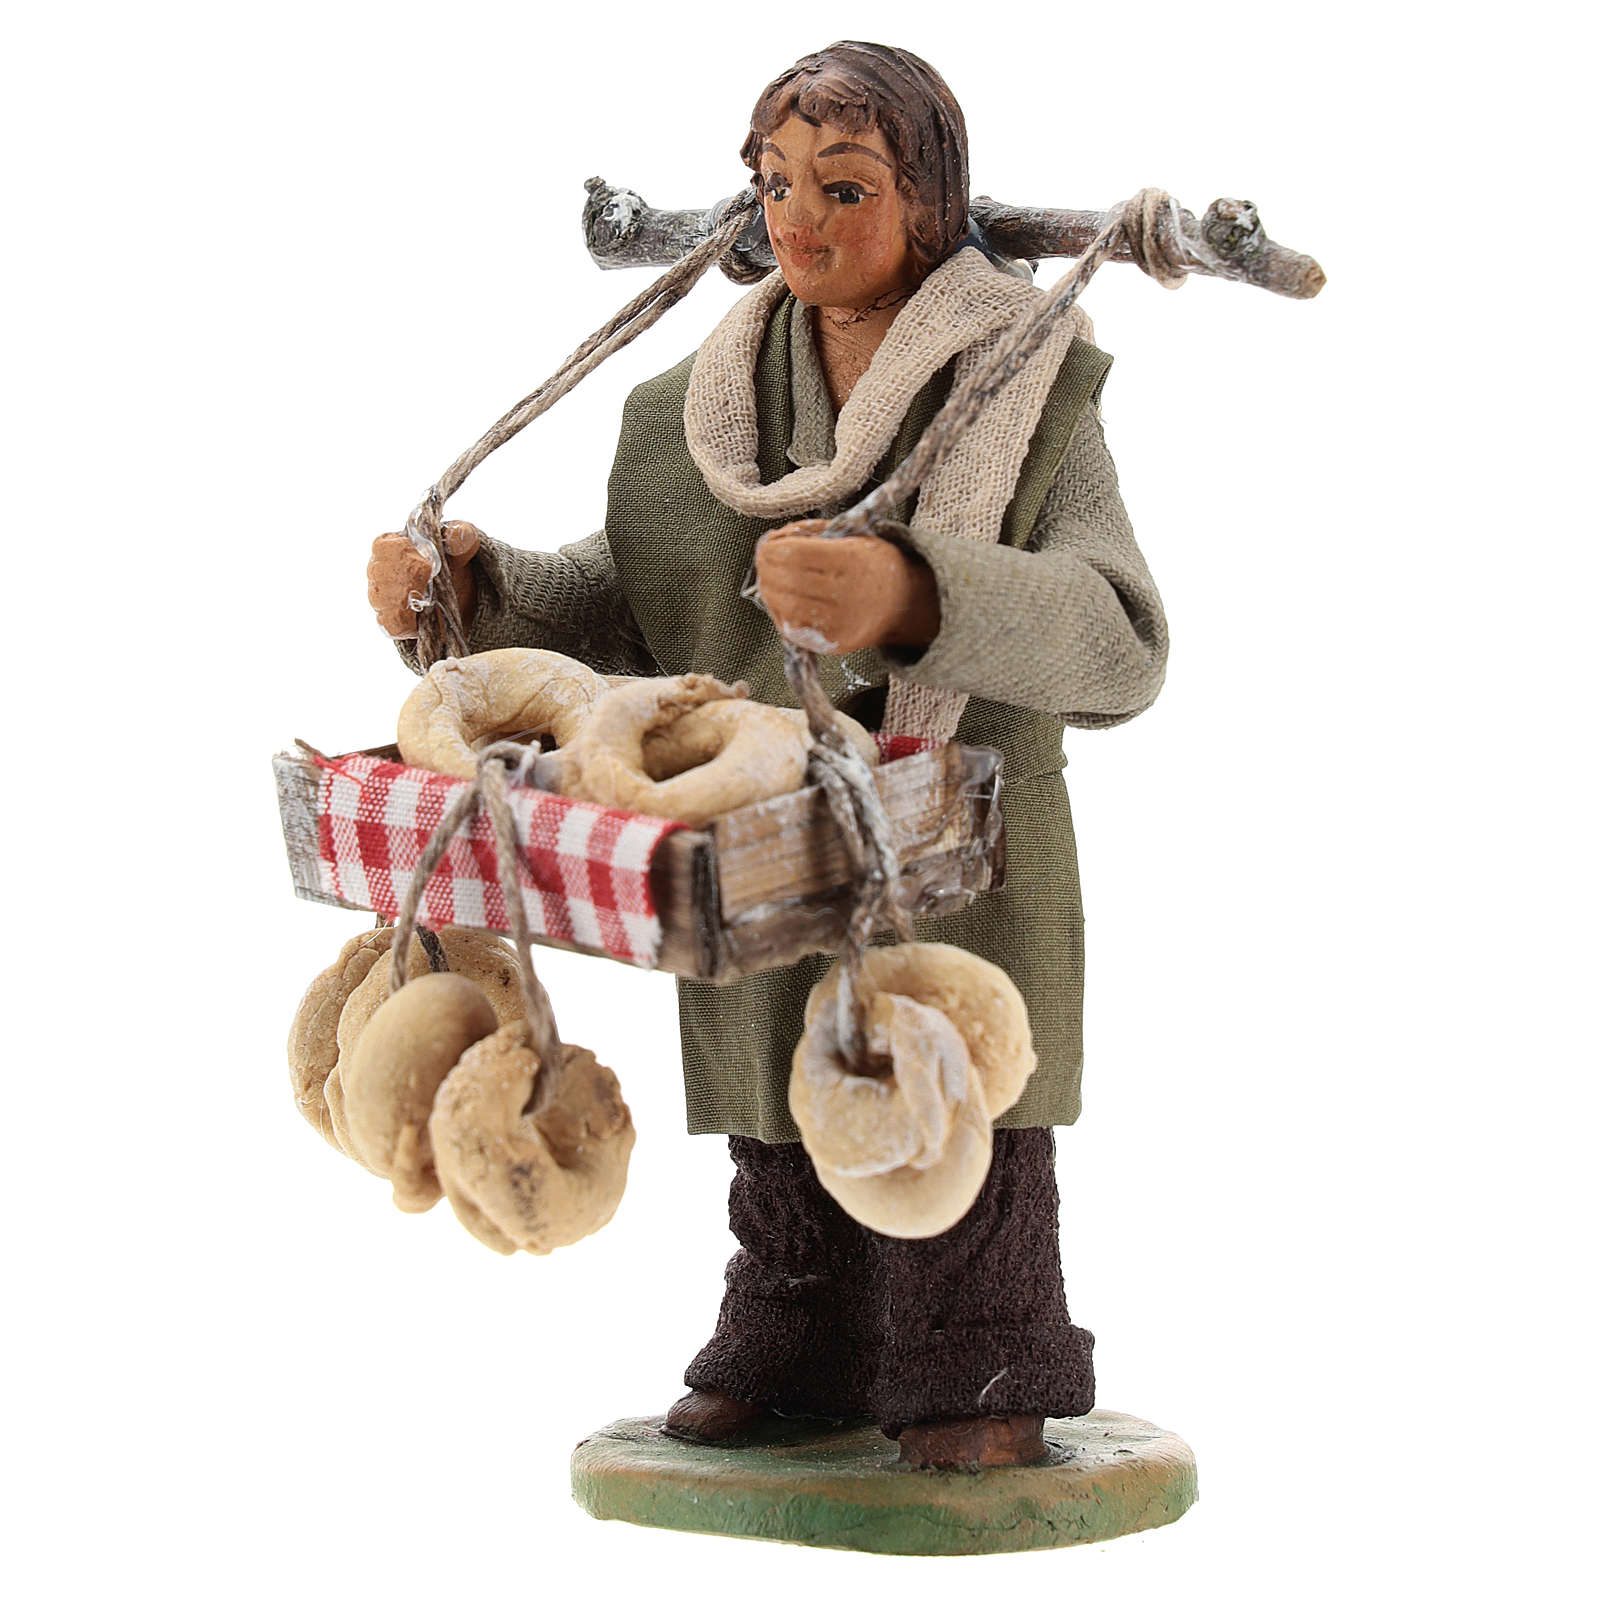 Taralli seller 10cm, Neapolitan Nativity figurine 4